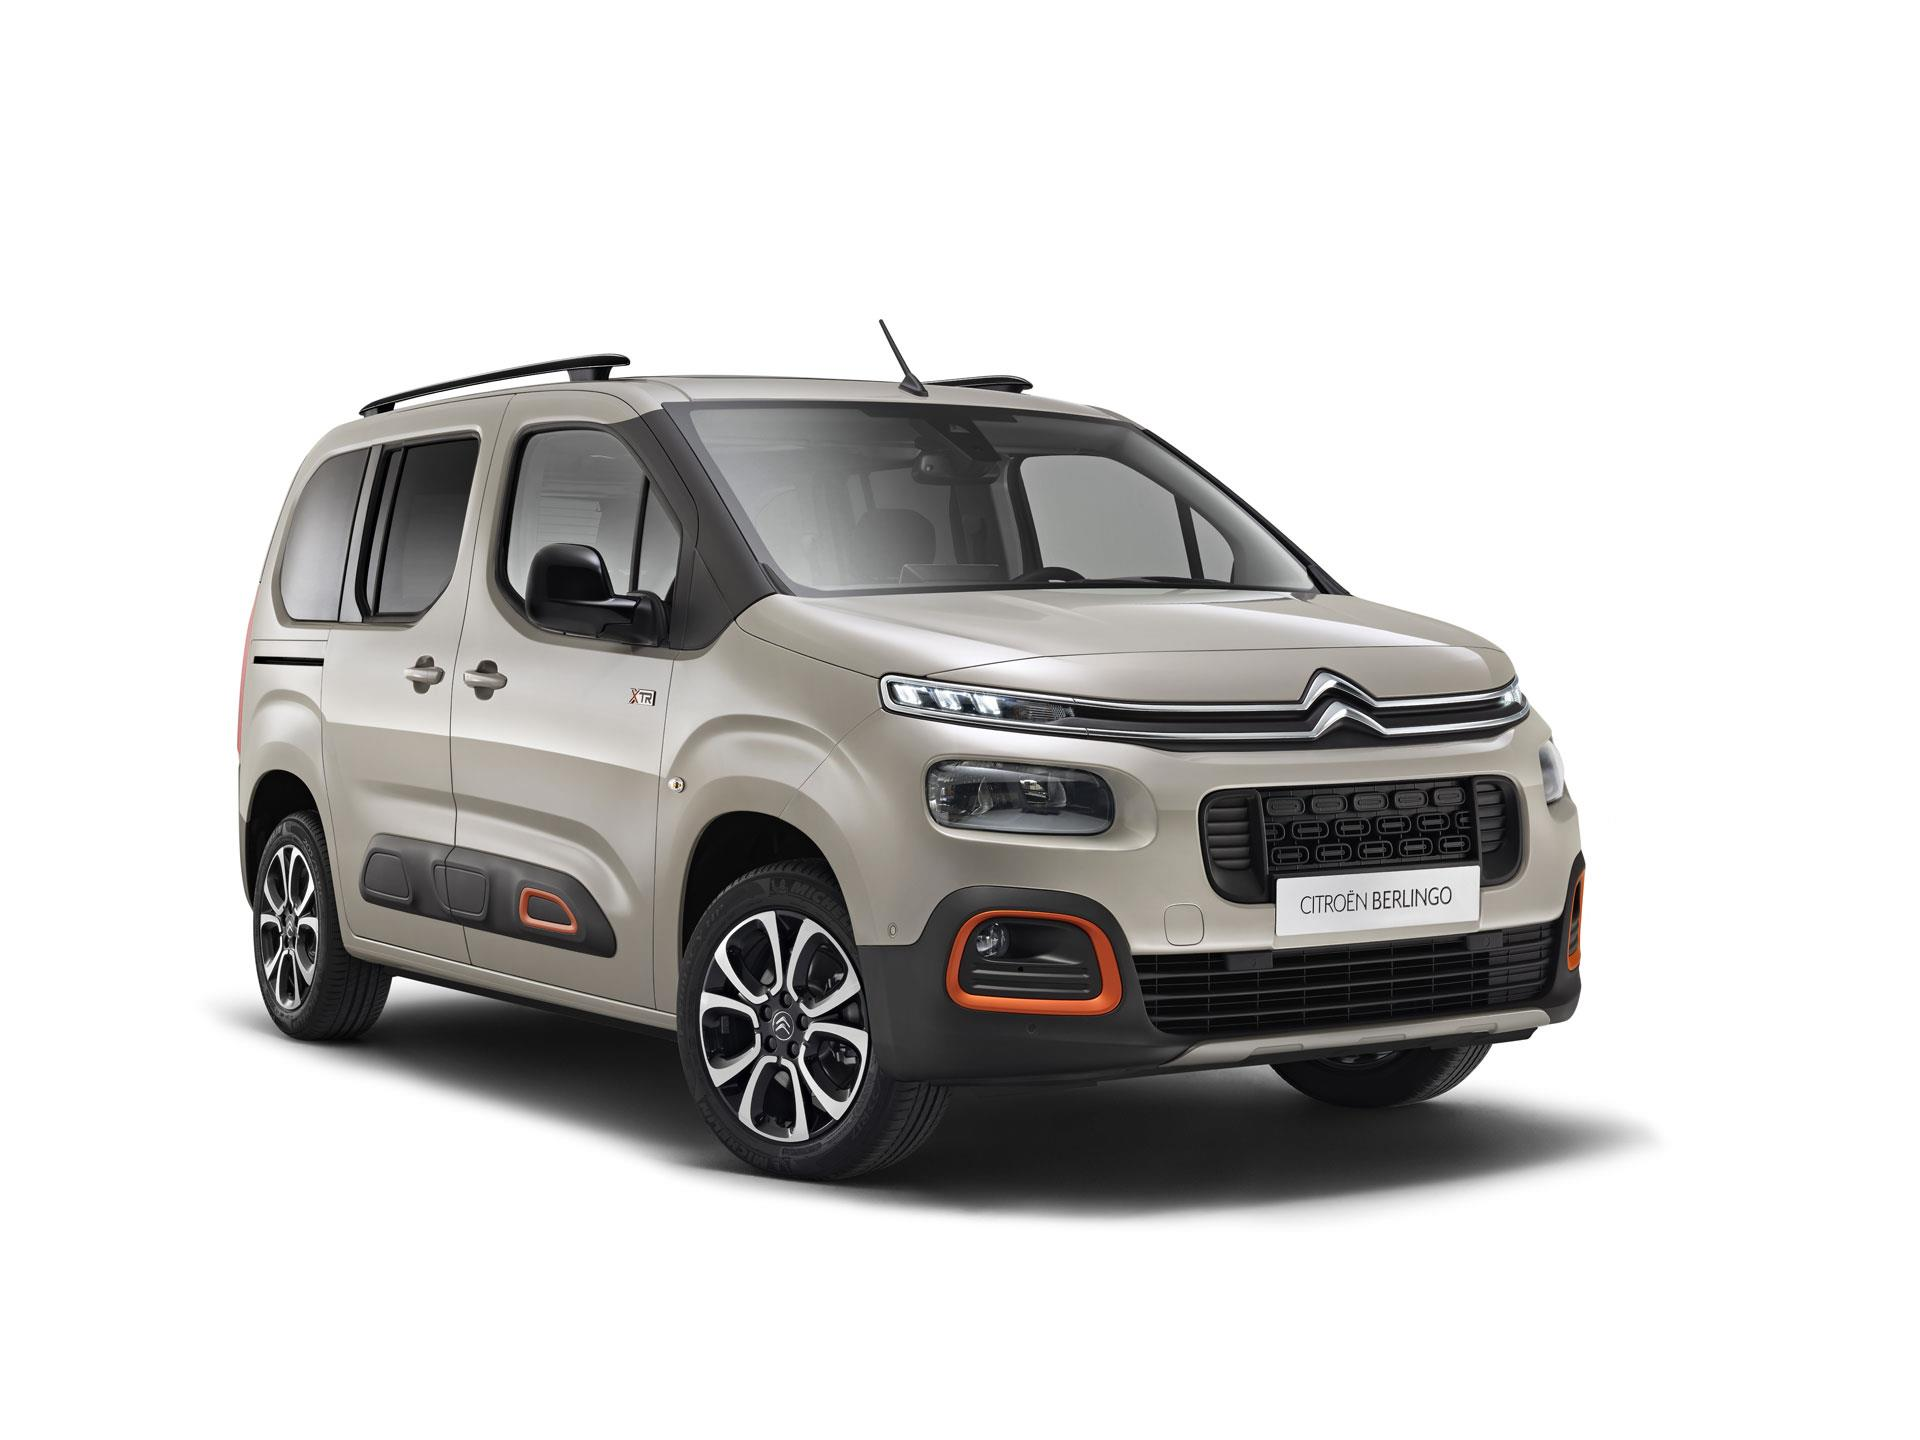 2018 citroen berlingo multispace news and information